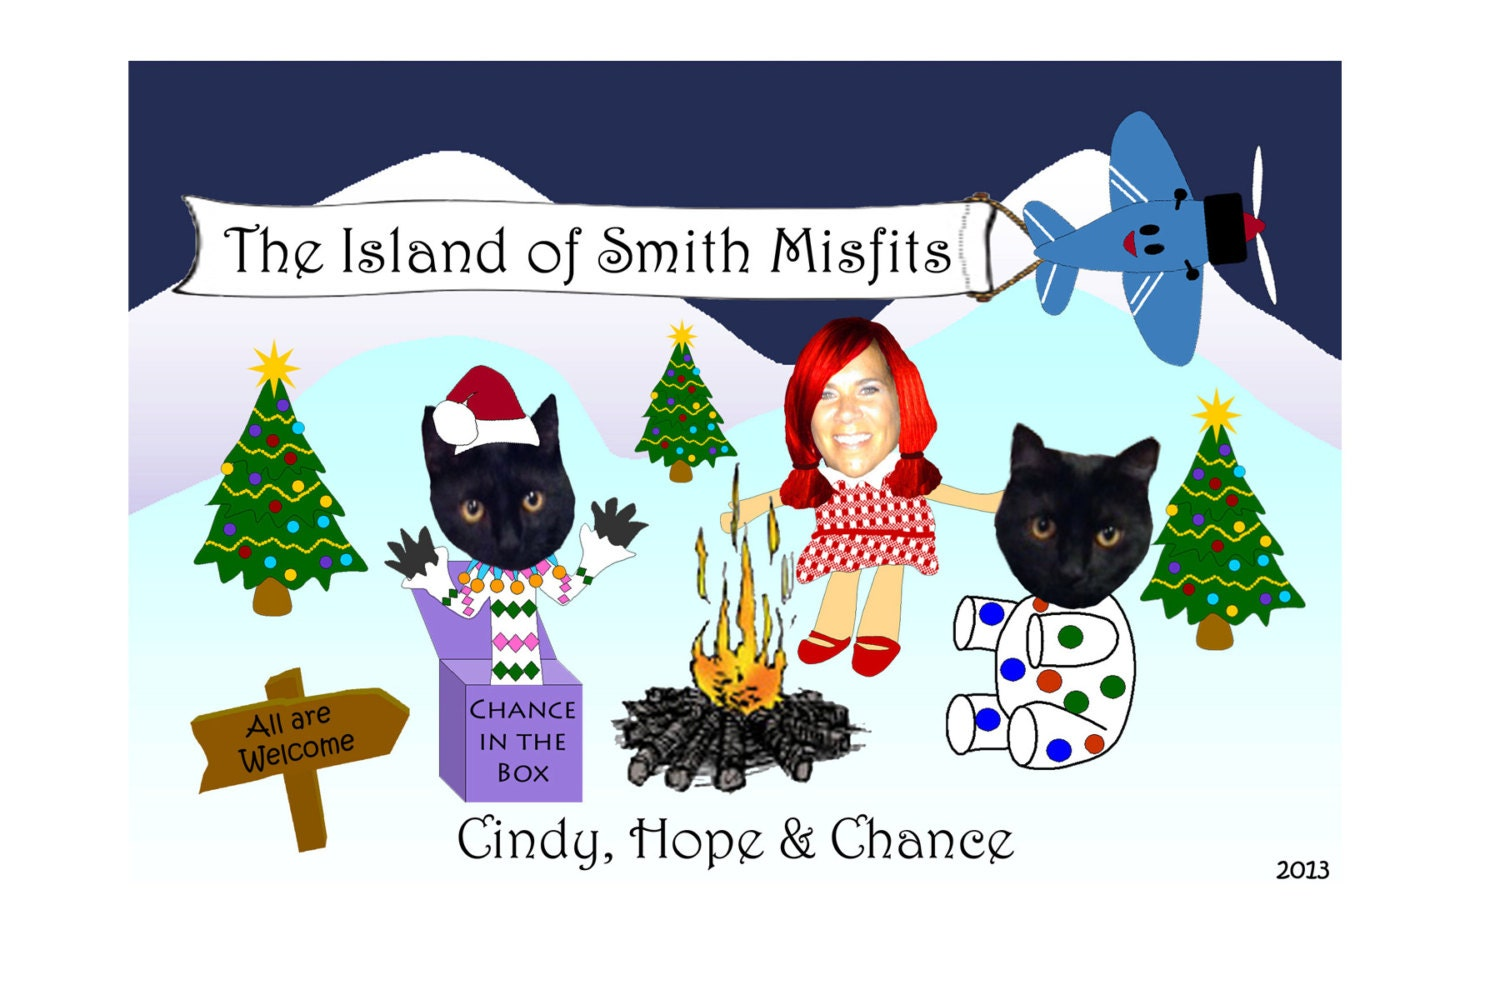 Island of misfit toys unique family photo christmas card zoom kristyandbryce Gallery